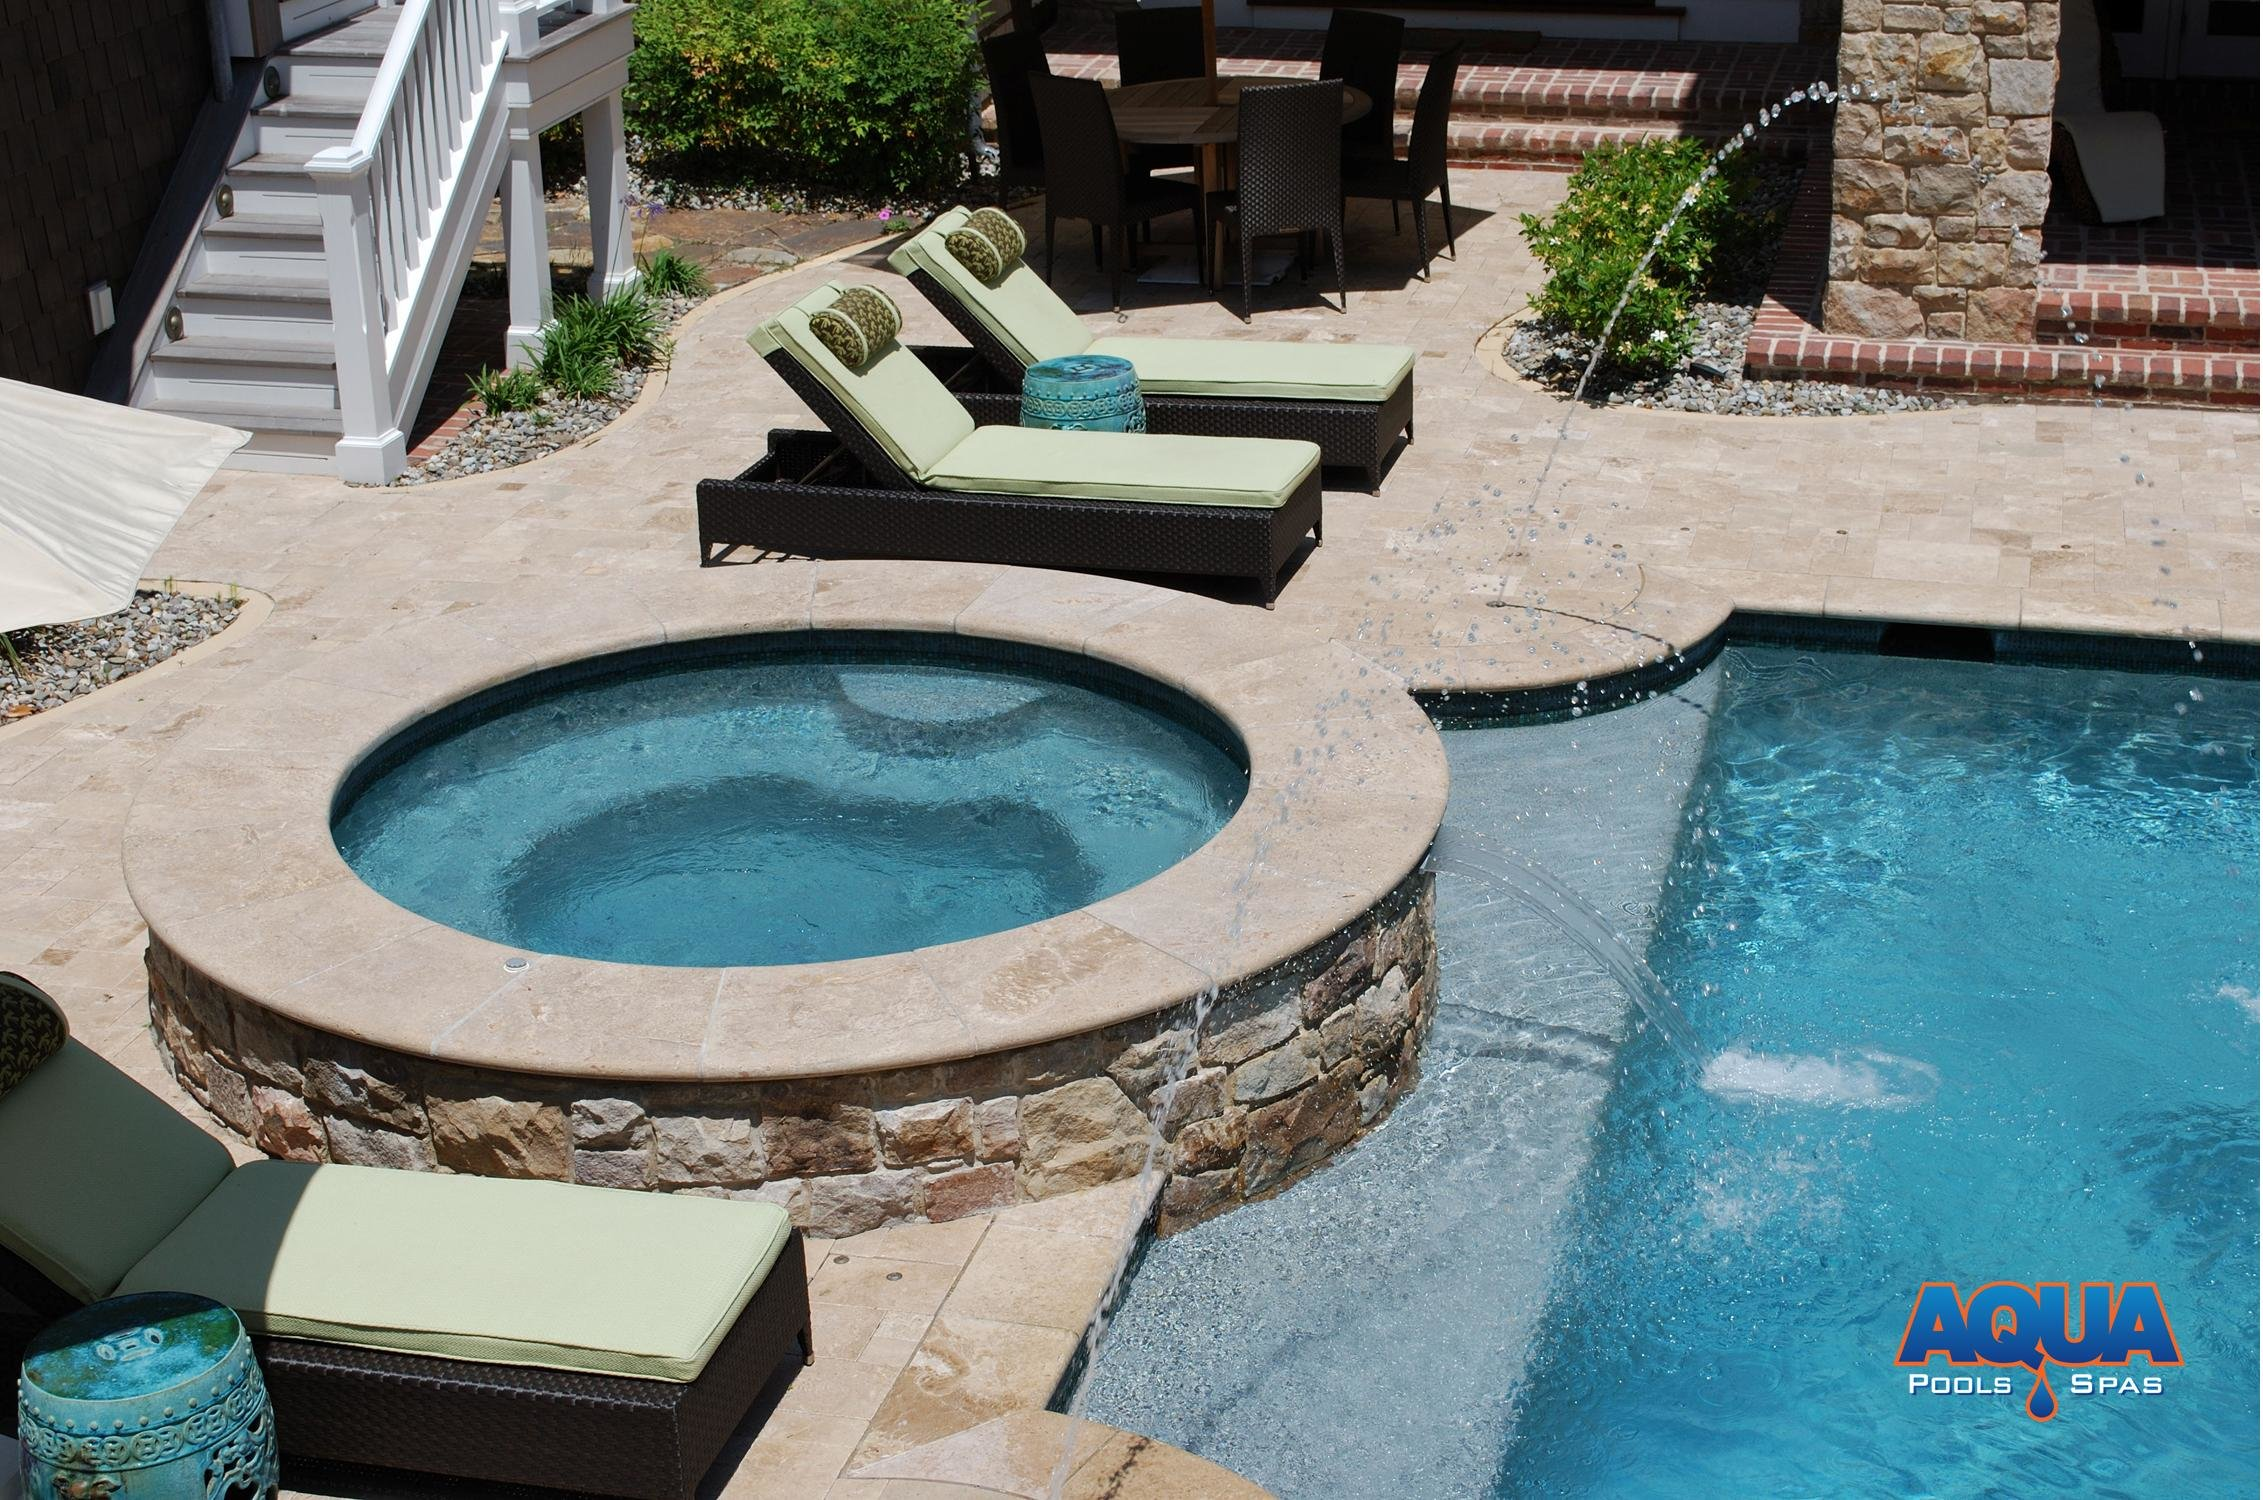 Jacuzzi Pool Hot Tub Custom Spas Custom Gunite Hot Tubs Aqua Pools And Spas